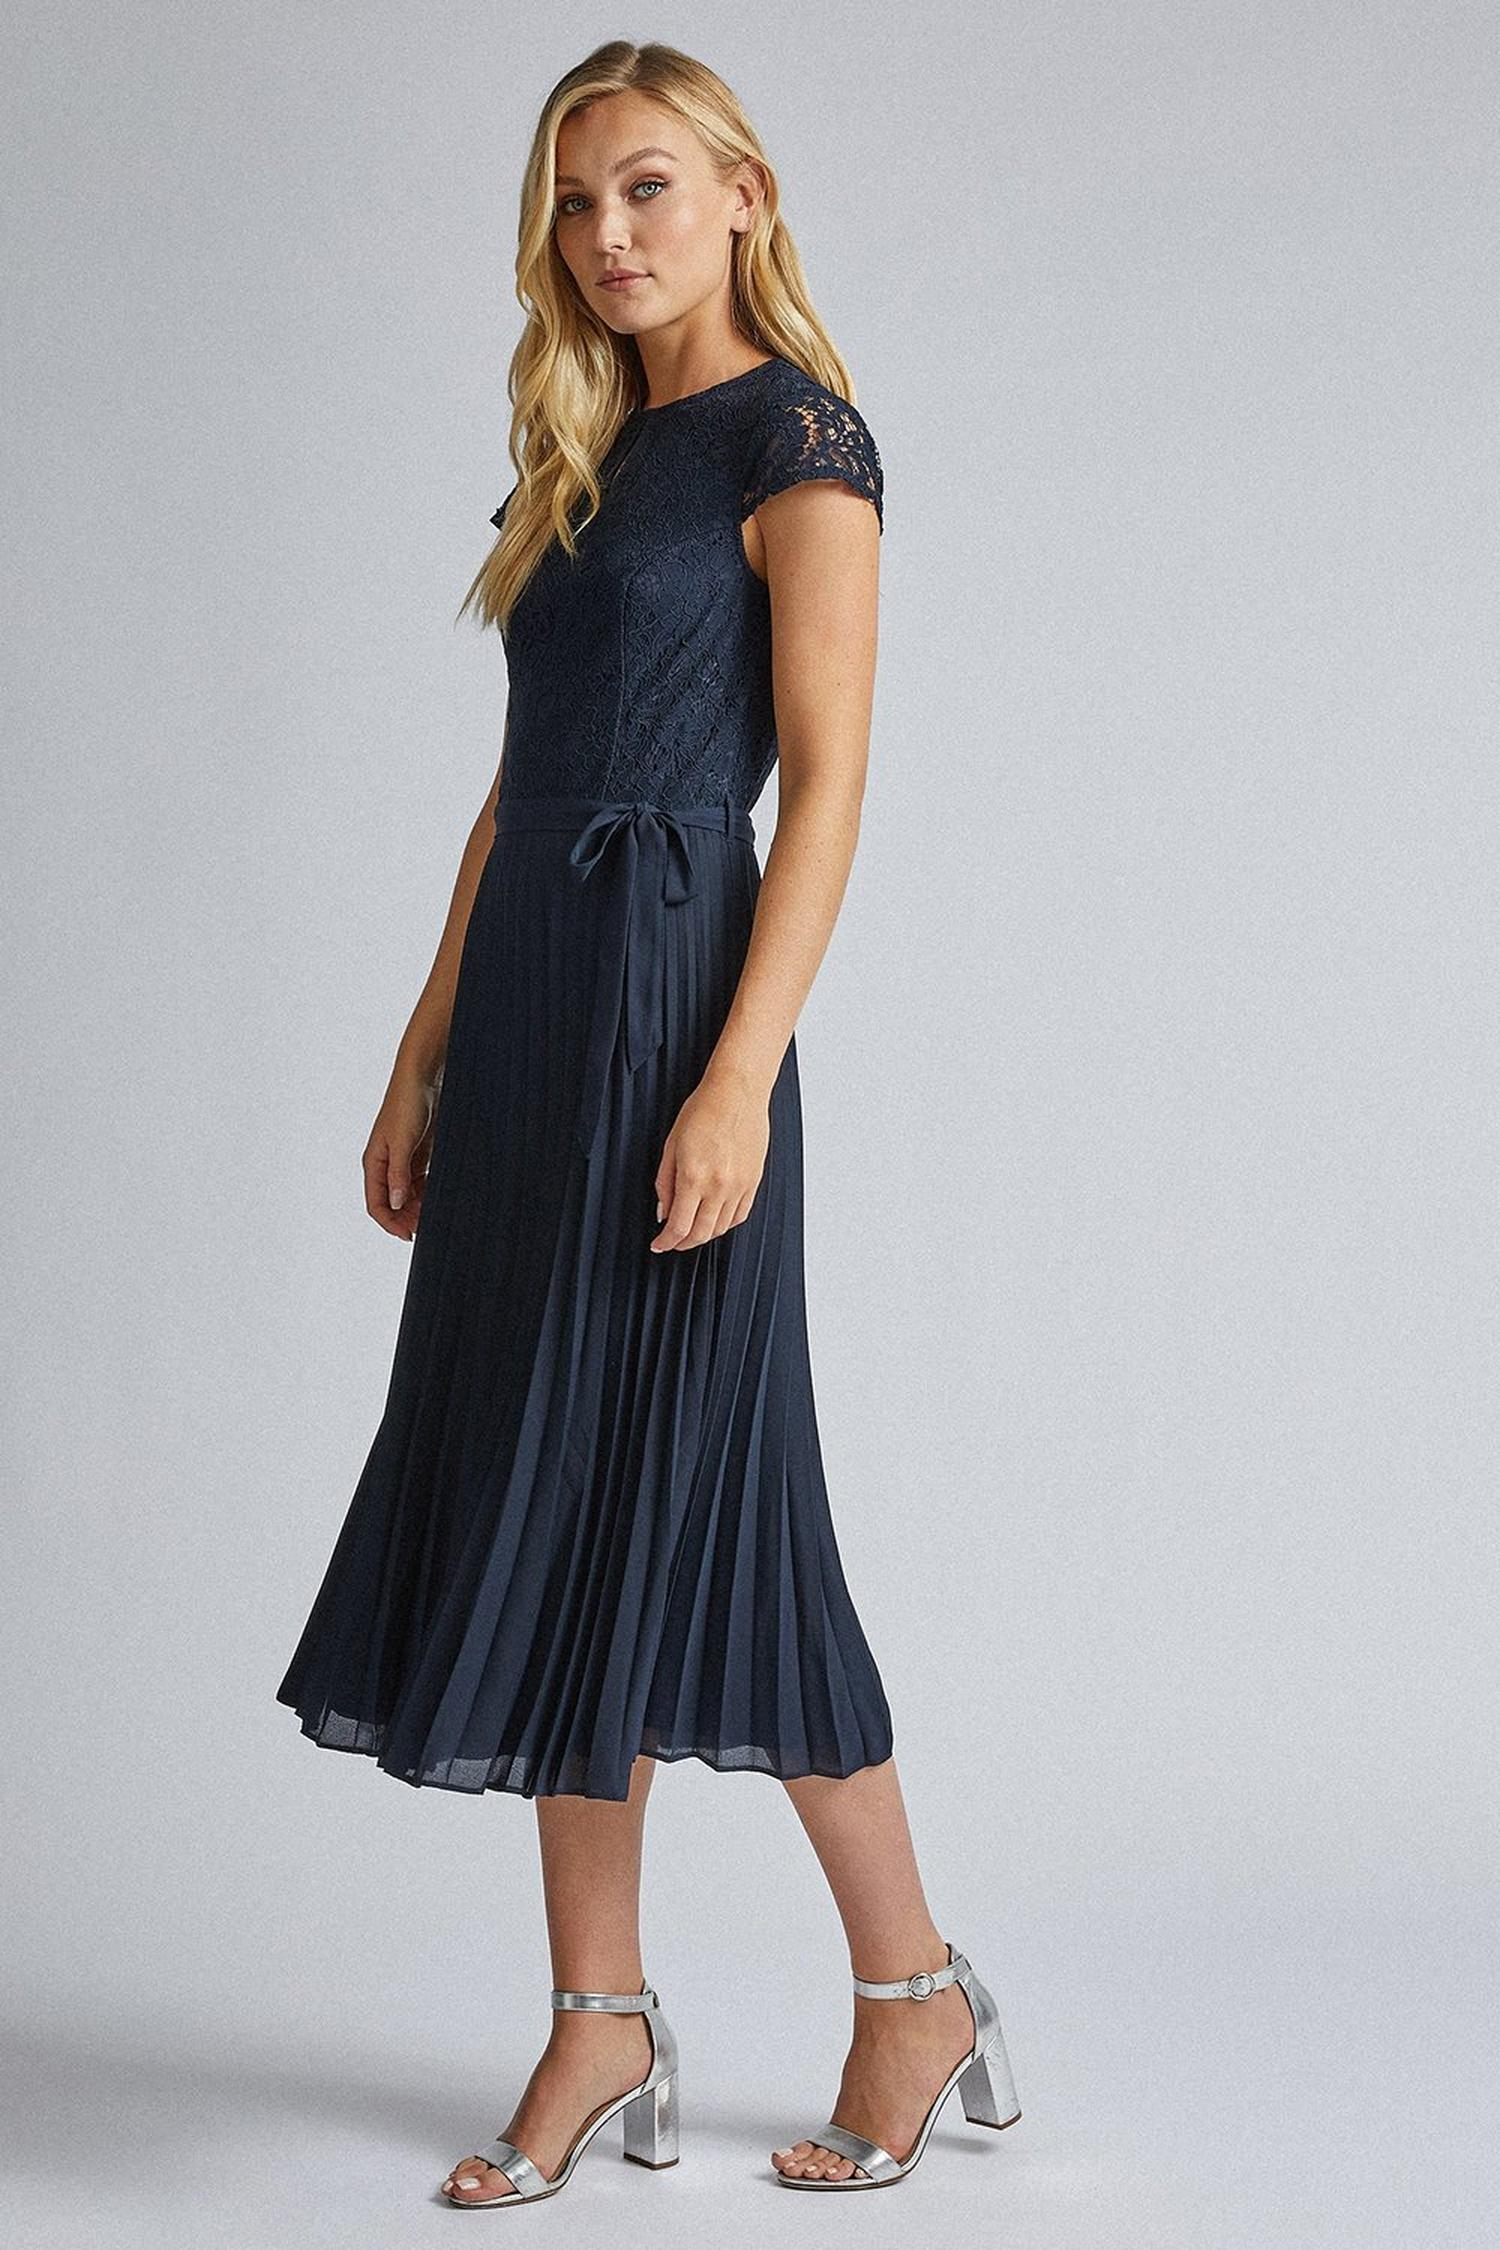 148 Tall Navy Blue Lace Pleated Dress image number 2